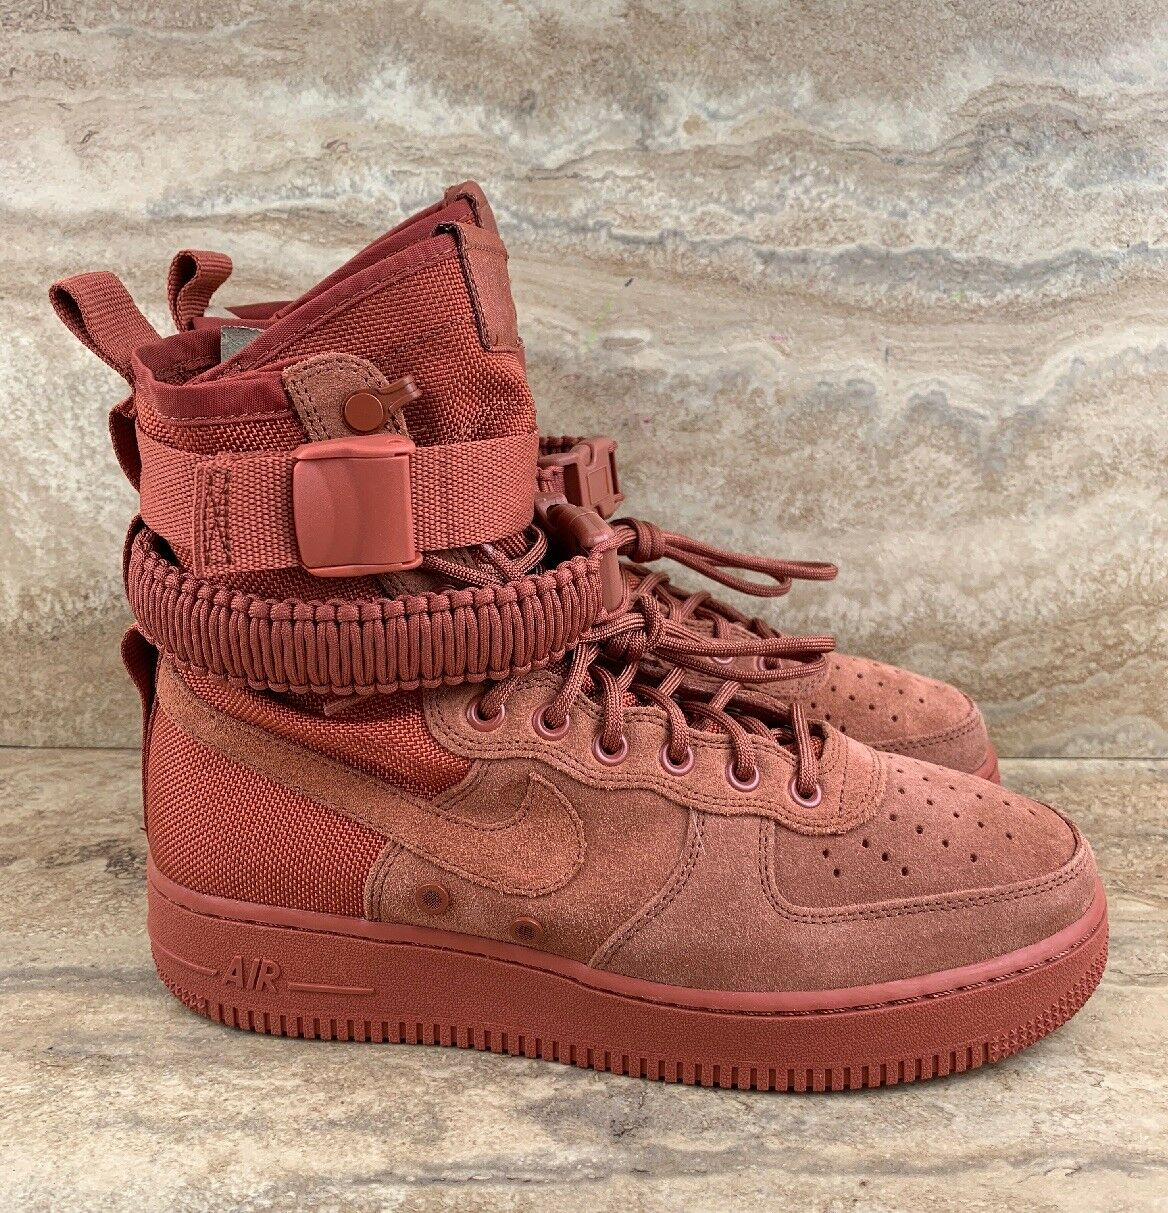 Nike SF AF1 Special Field Dusty Peach Men's shoes